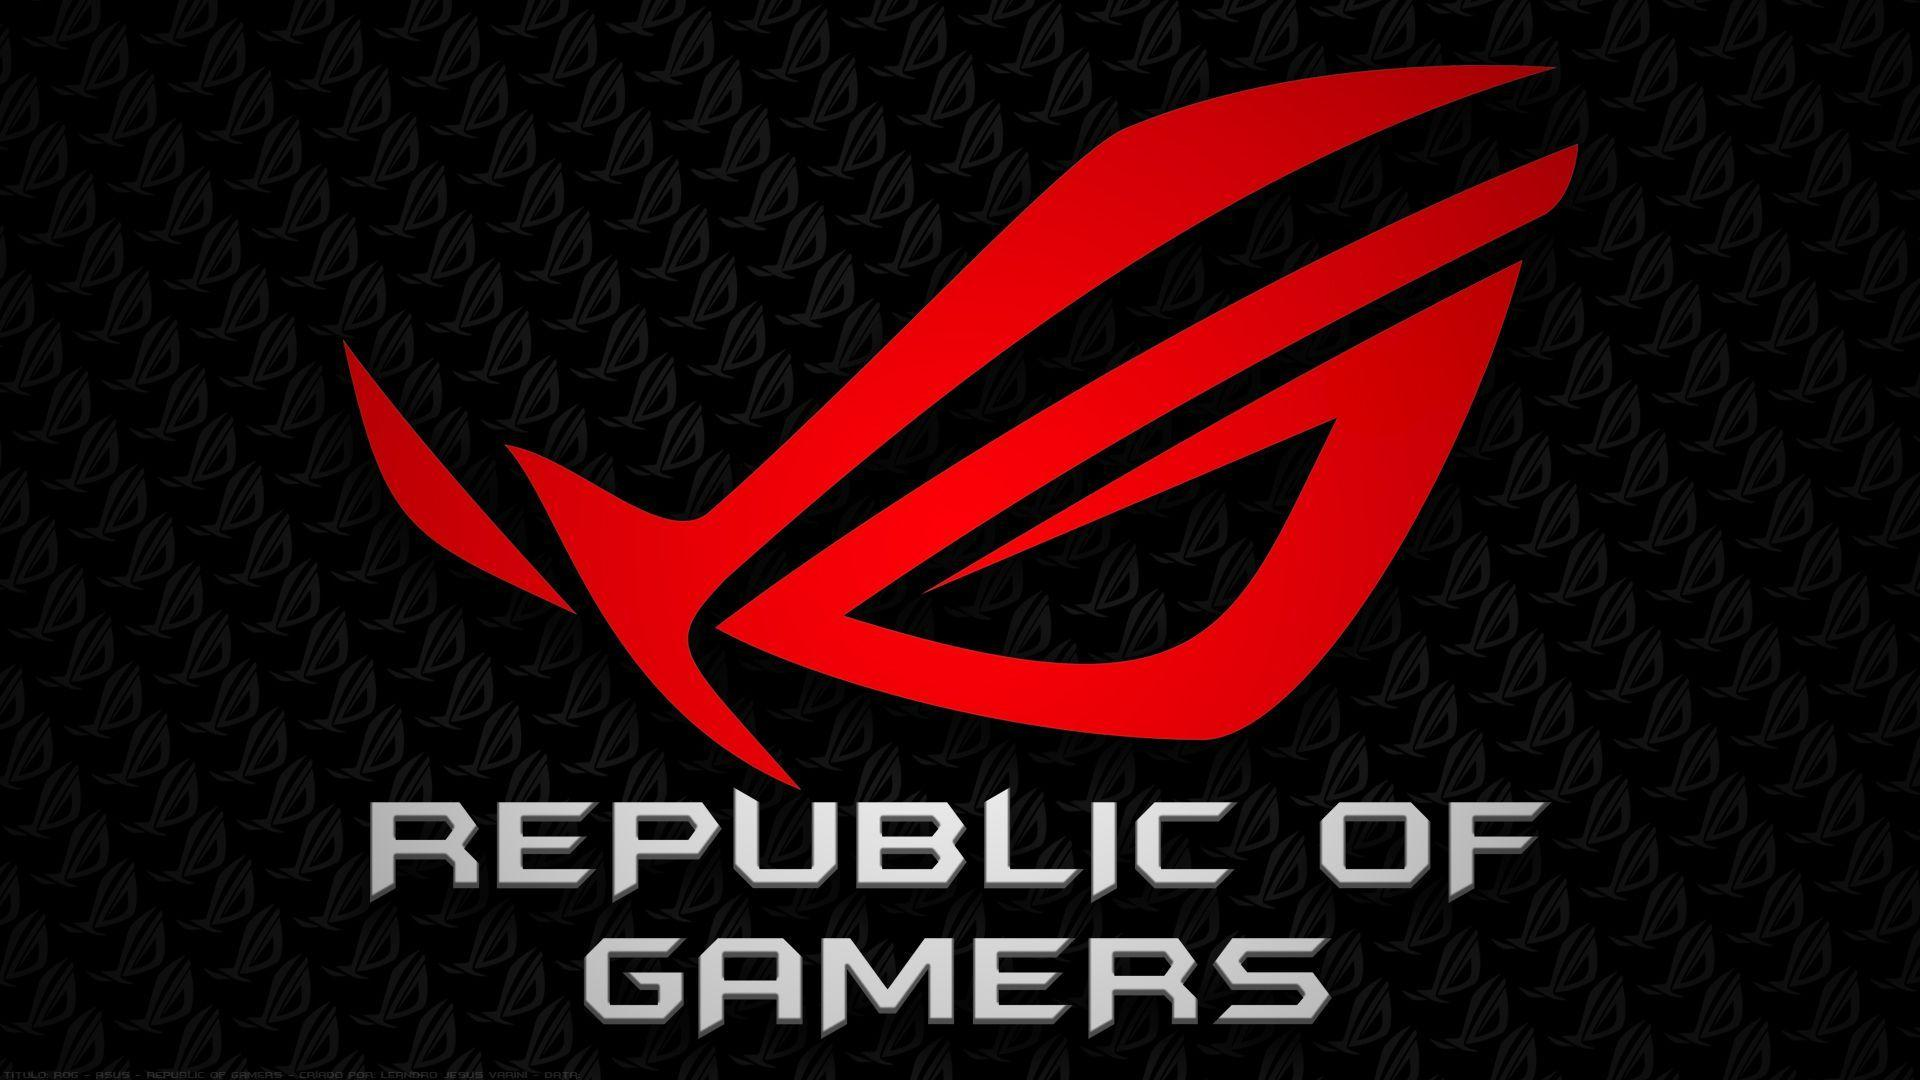 Republic Of Gamers Wallpapers Wallpaper Cave